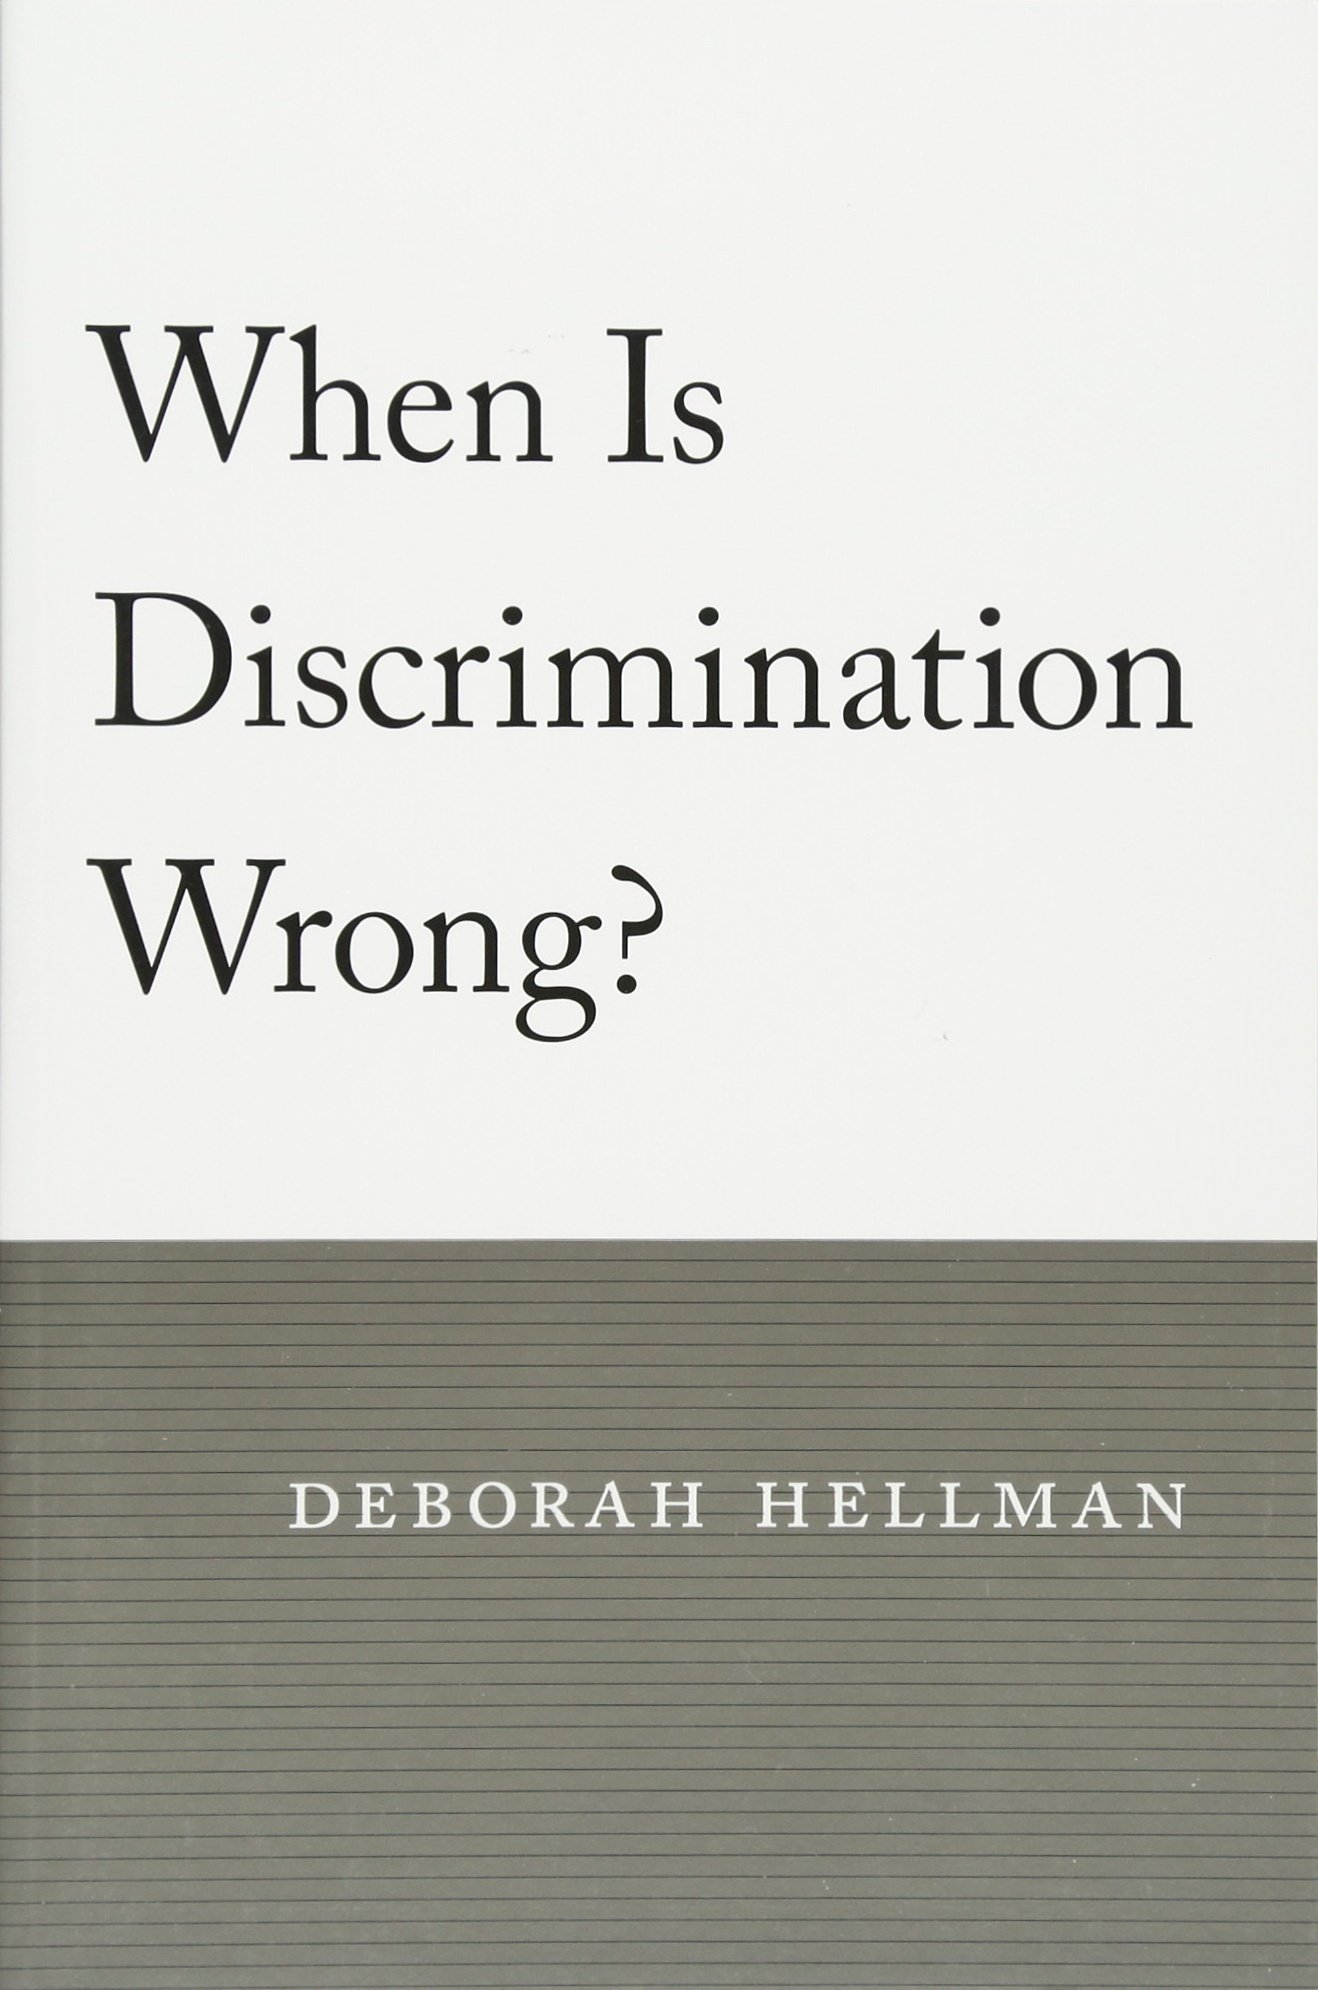 When Is Discrimination Wrong?